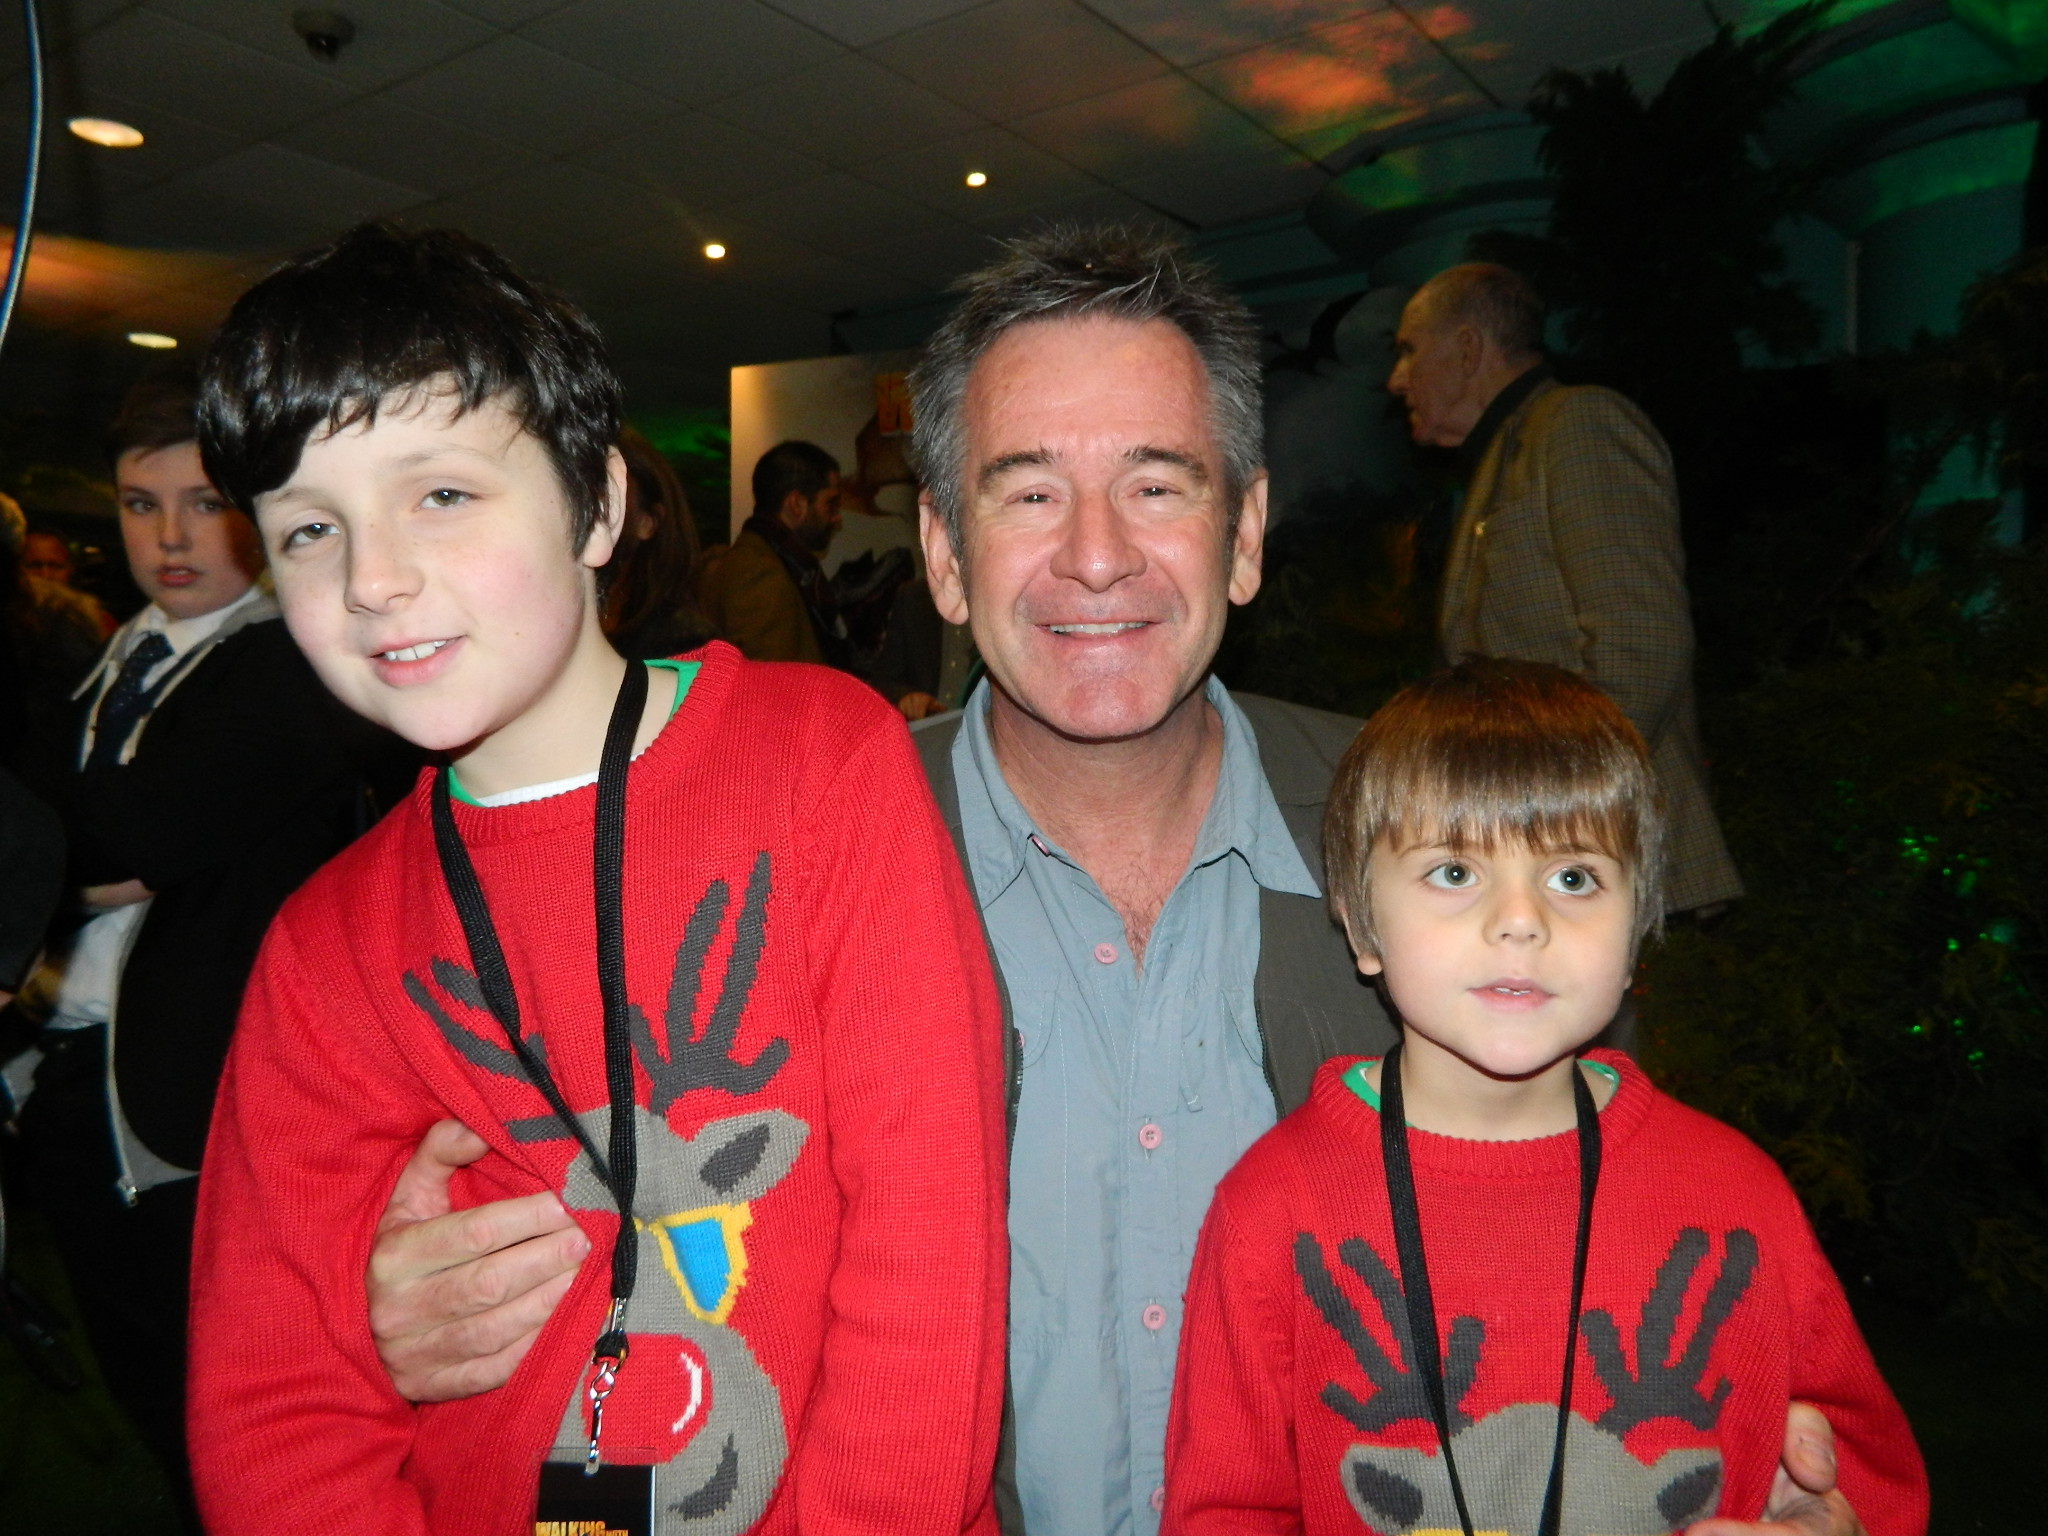 Walking With Dinosaurs The Movie 3d Premiere And Toy Reviews